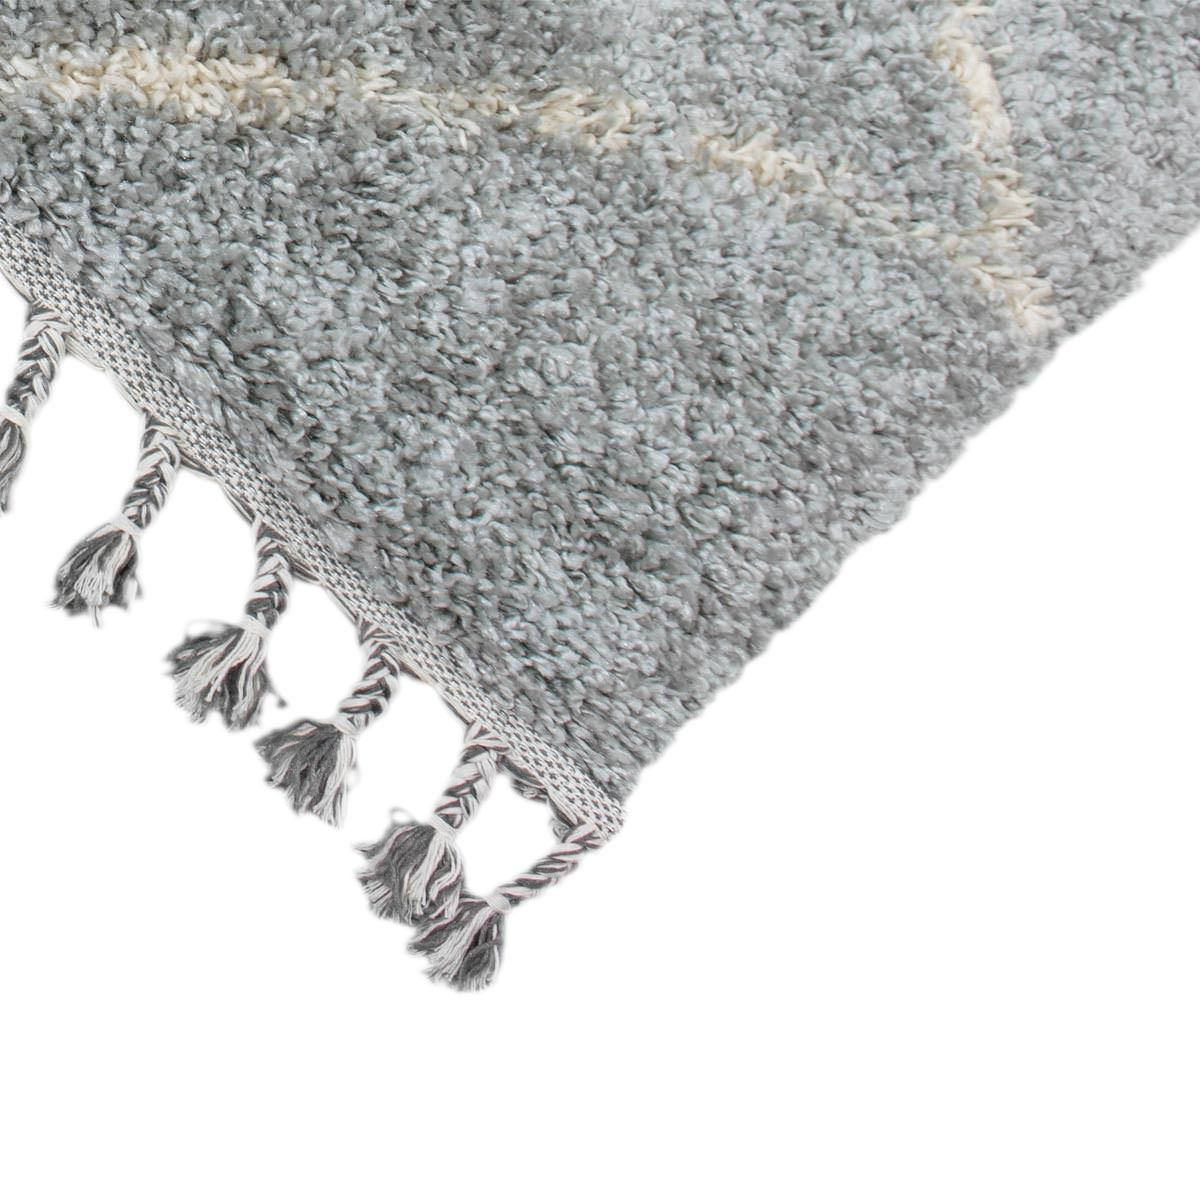 Shaggy Marrakech Rug 07 Grey/Cream Runner 2